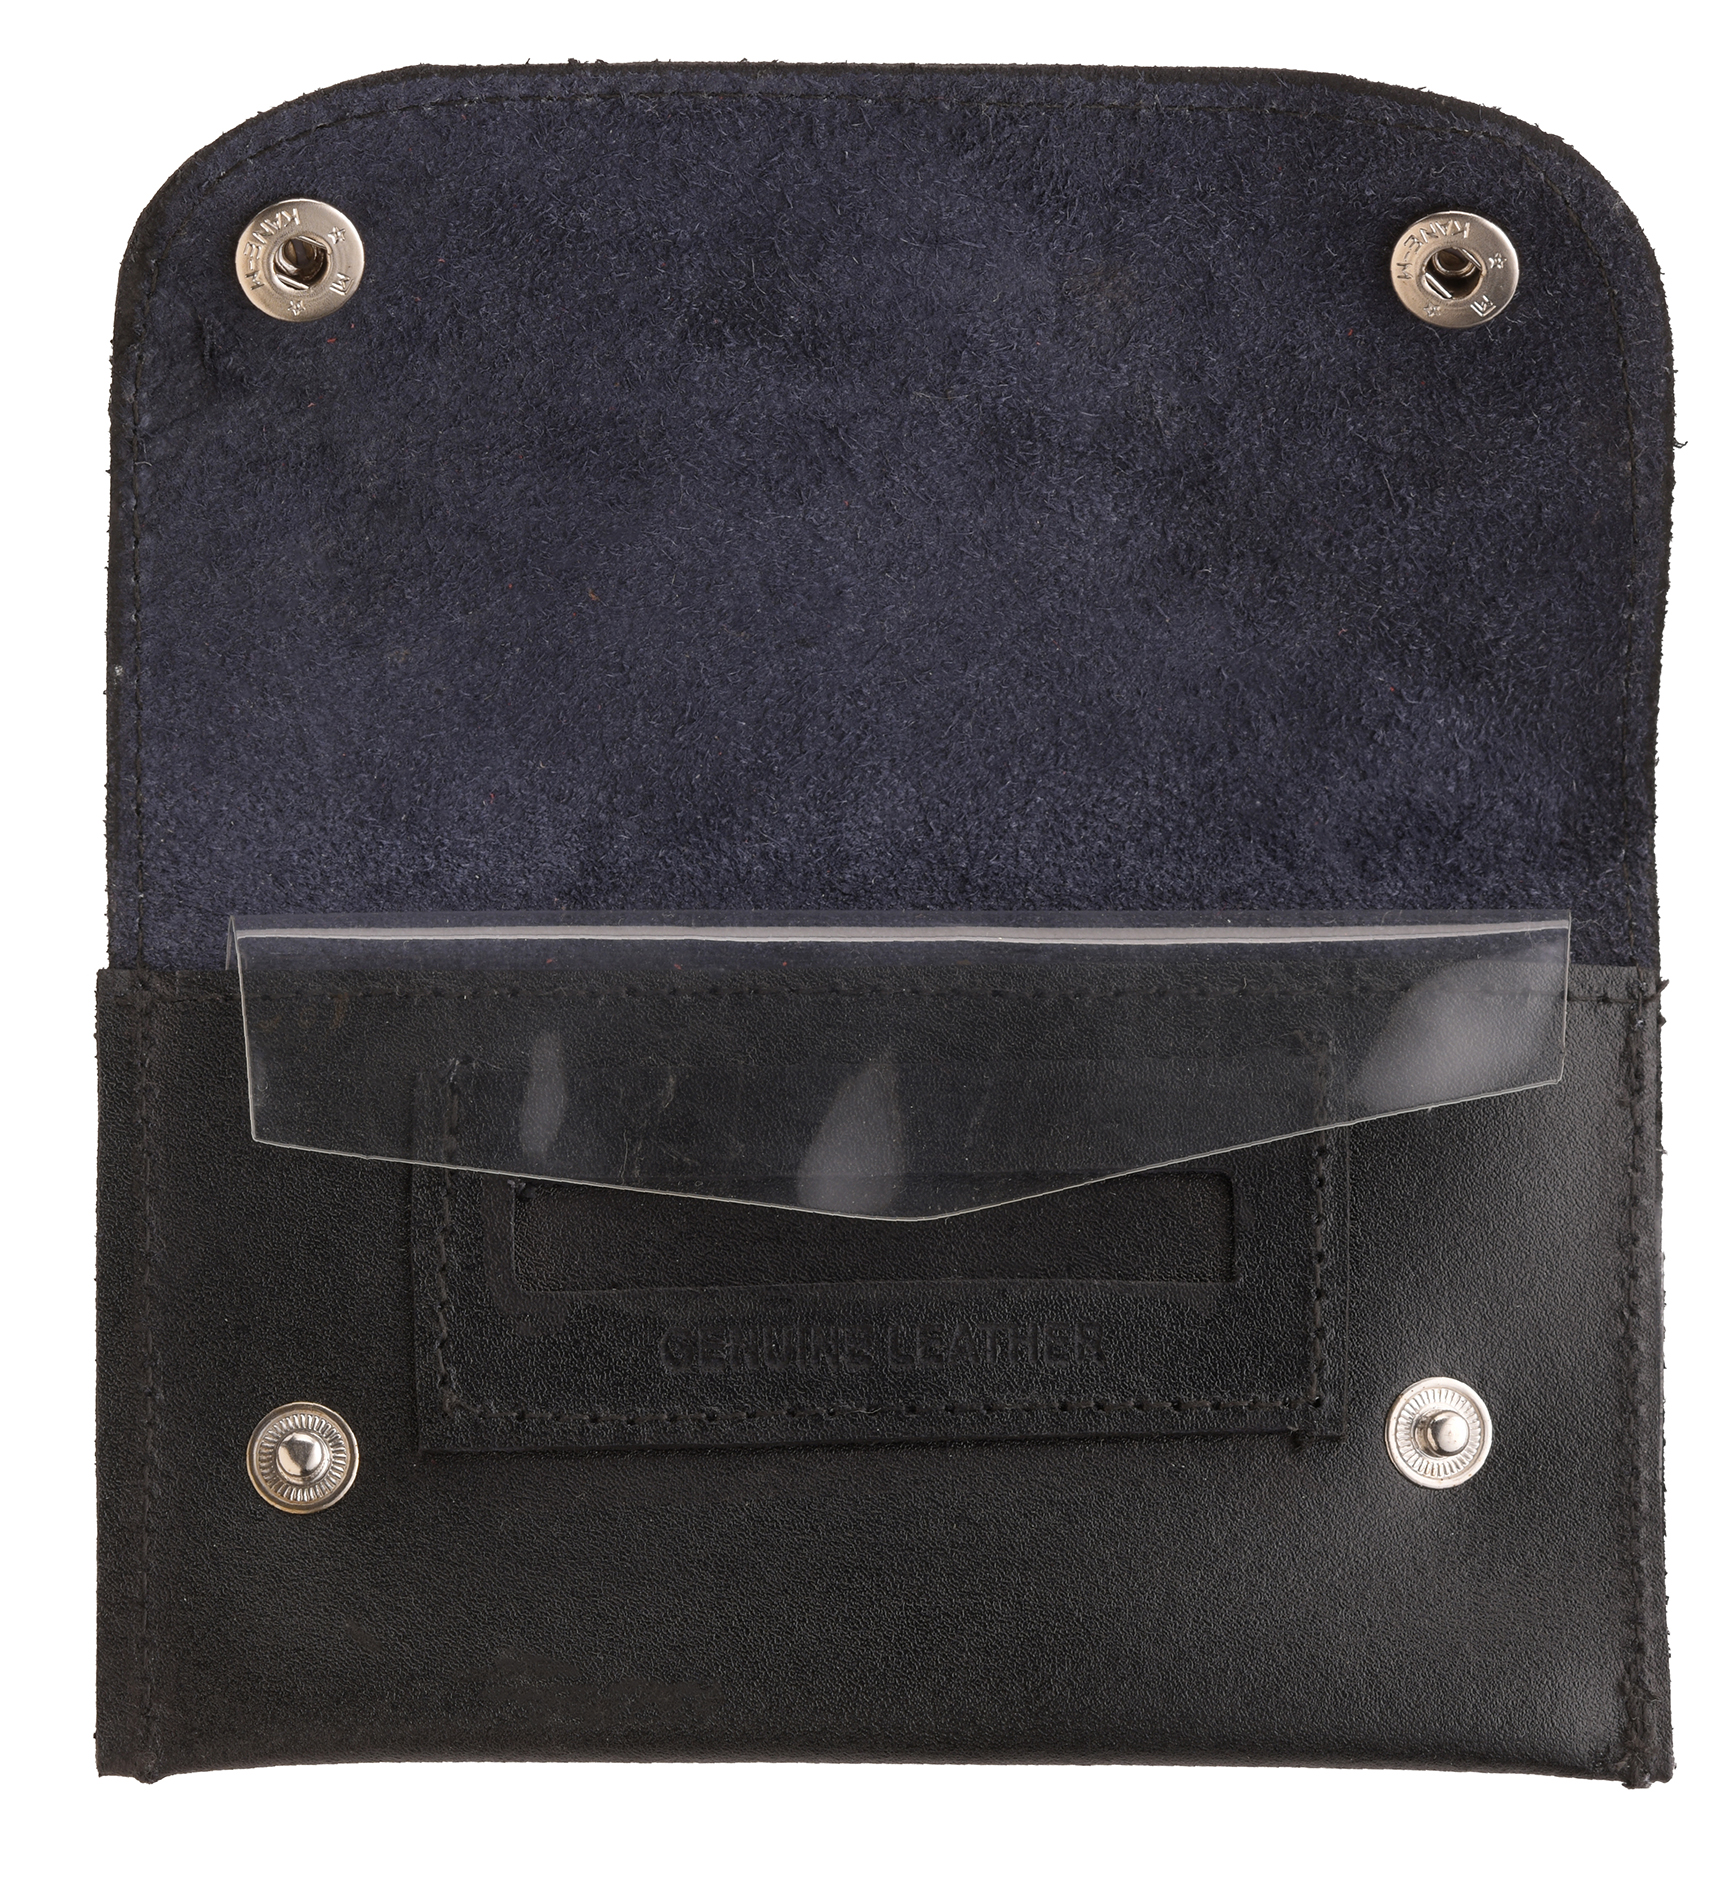 Genuine Hard Leather Dual Popper Keep Tobacco Fresh Paper Pouch Holder Black